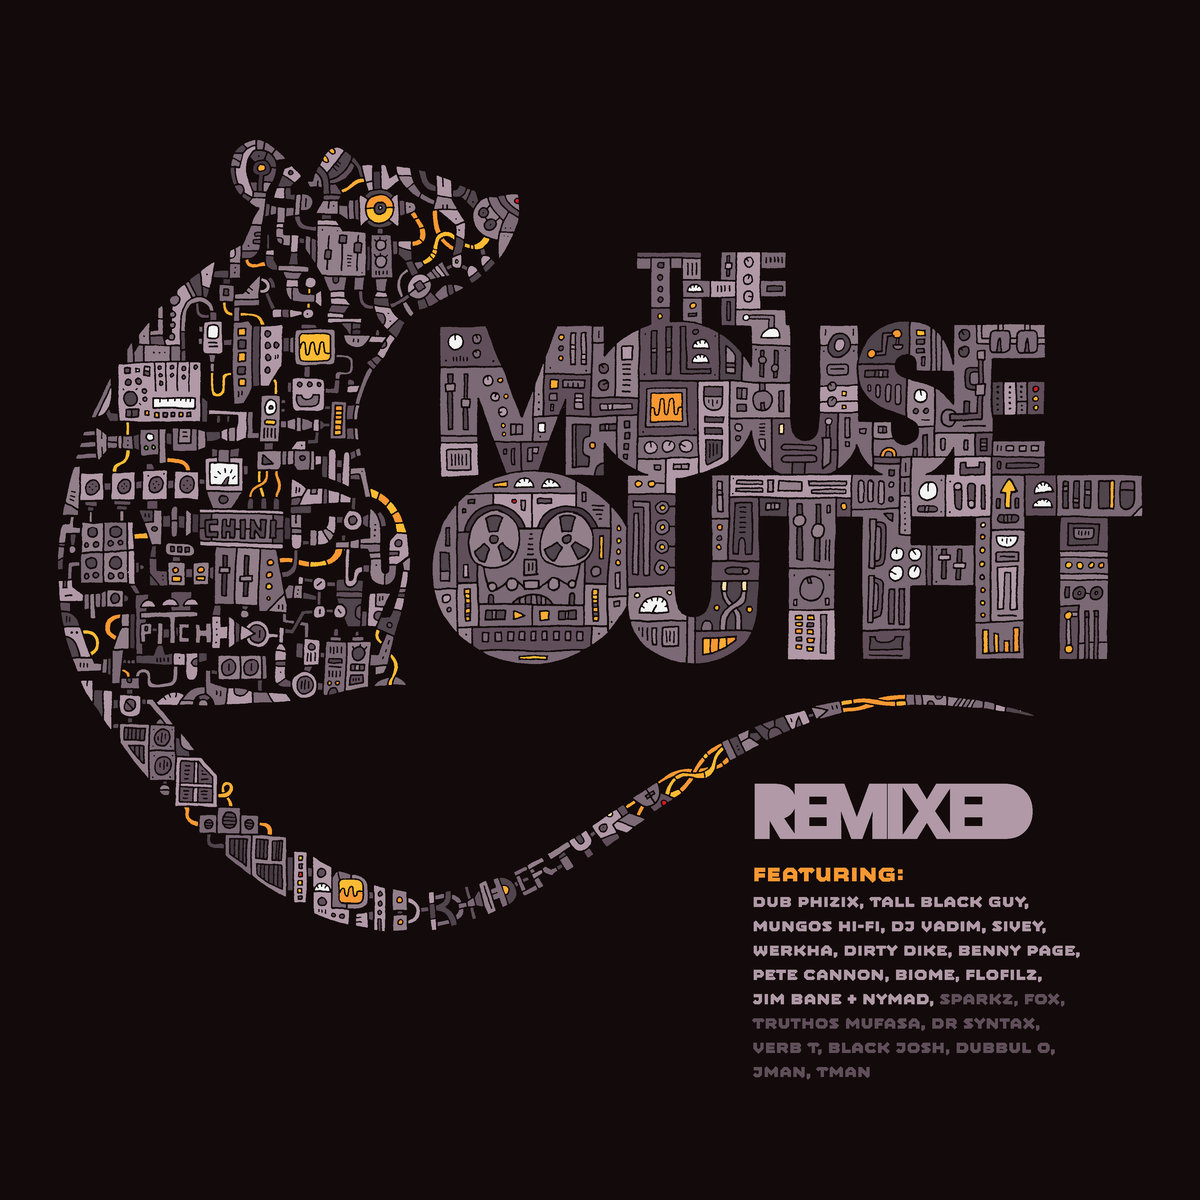 Stream_the_mouse_outfit_presenta_remixed